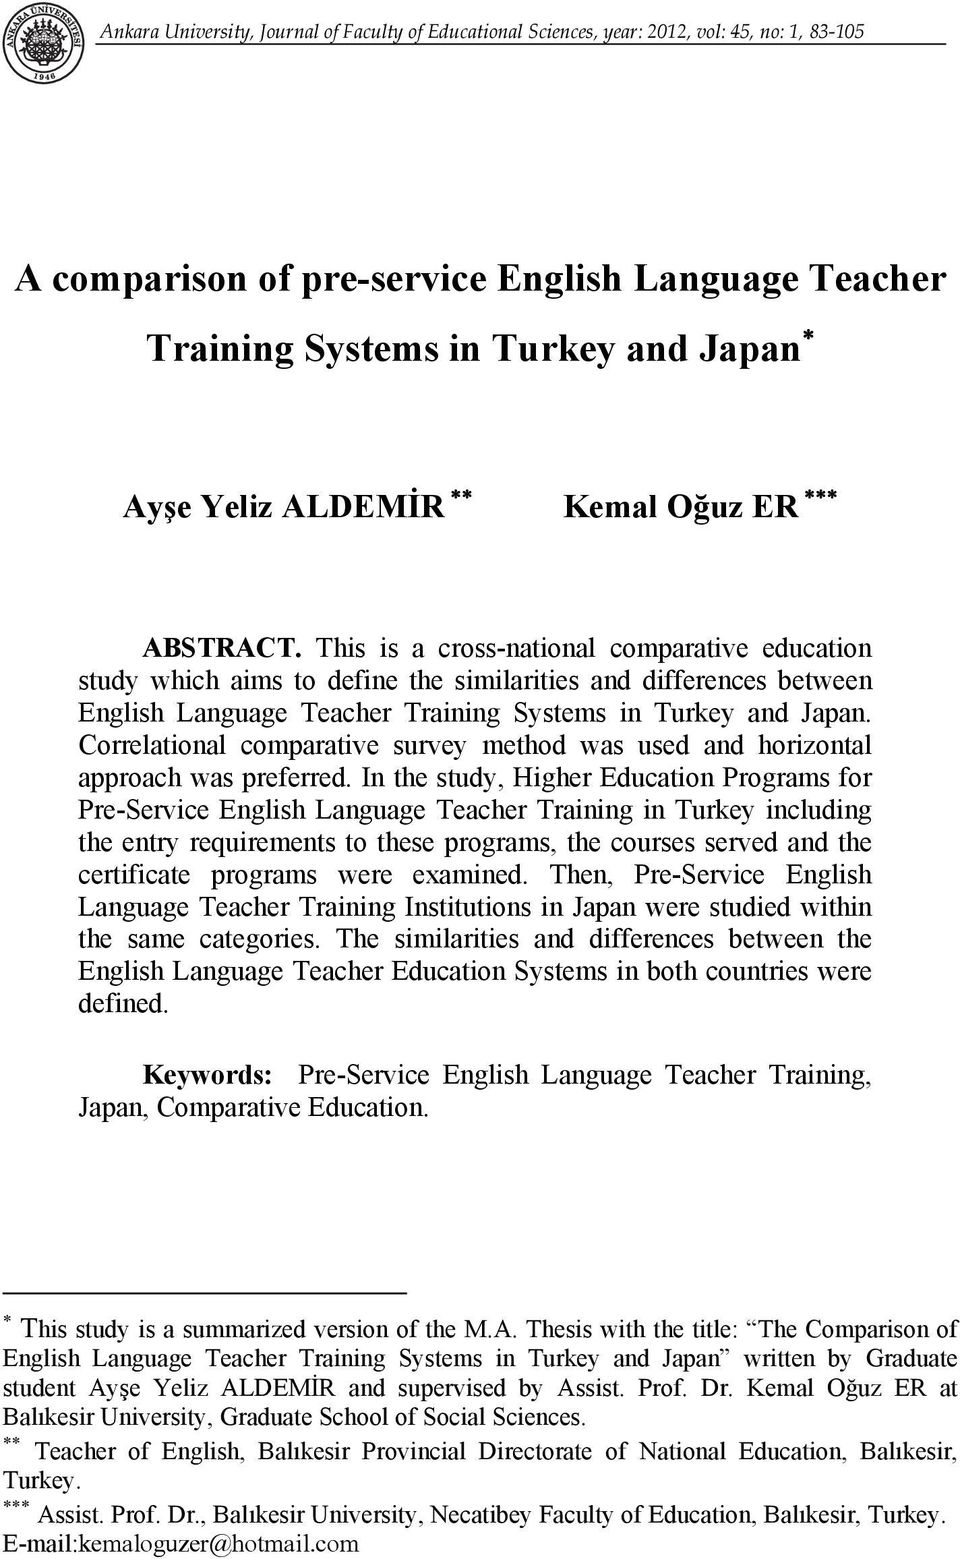 This is a cross-national comparative education study which aims to define the similarities and differences between English Language Teacher Training Systems in Turkey and Japan.